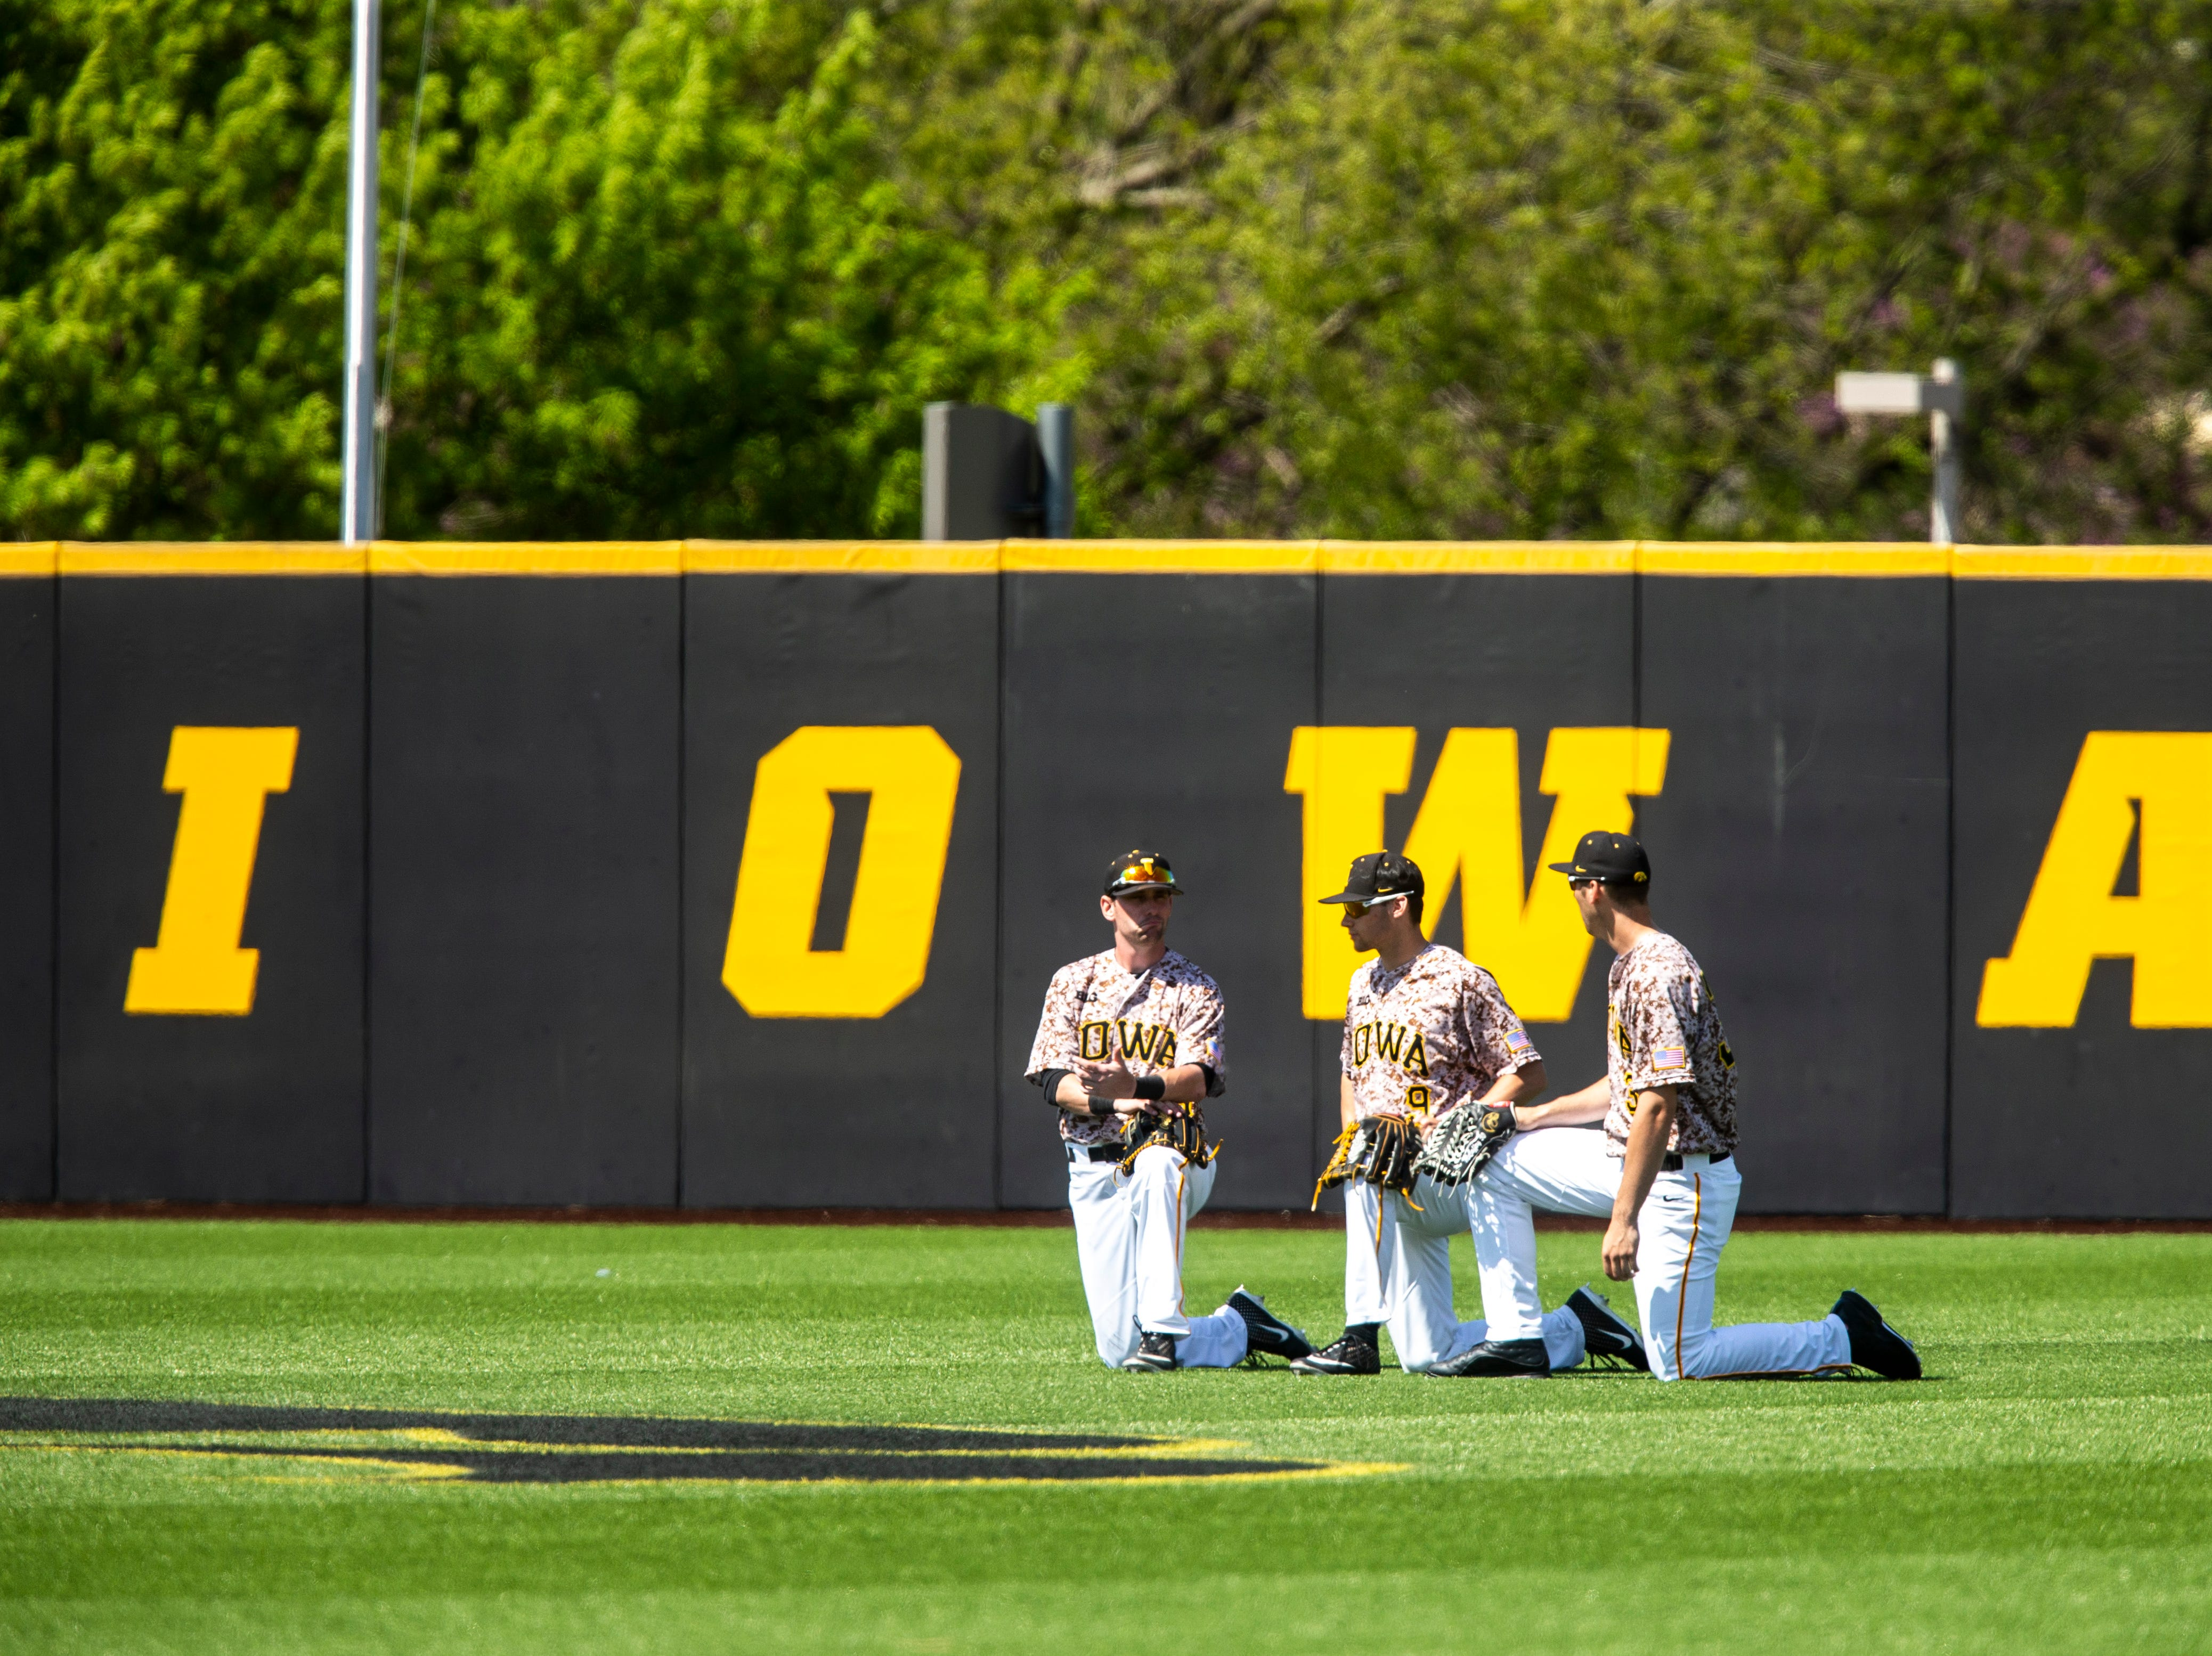 Iowa's Chris Whelan, from left, Ben Norman and Connor McCaffery kneel in the outfield during a NCAA non conference baseball game, Sunday, May 5, 2019, at Duane Banks Field in Iowa City, Iowa.